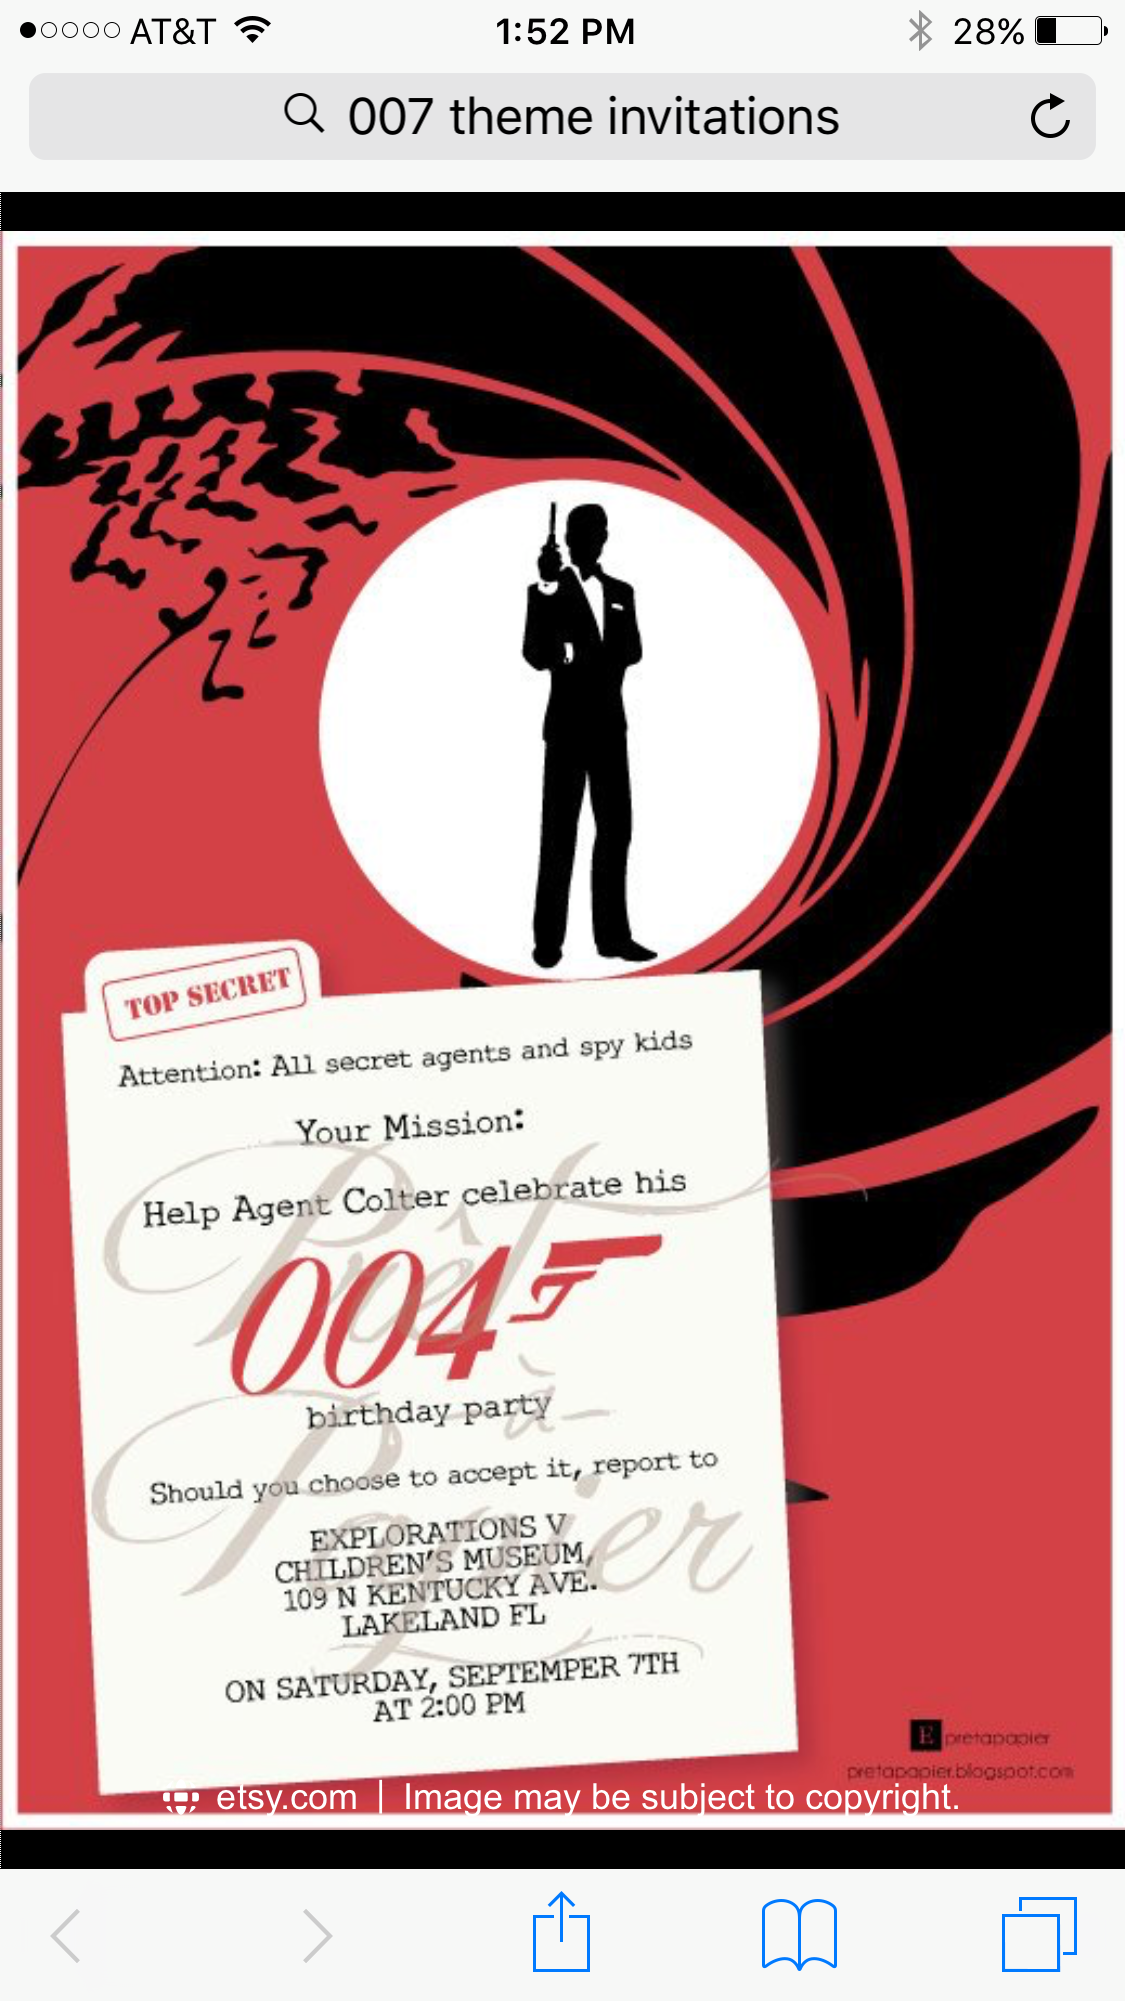 Pin By Anseth Richards On Cheers Royal 007th James Bond Party Invitation James Bond Party Casino Royale Party Invitation